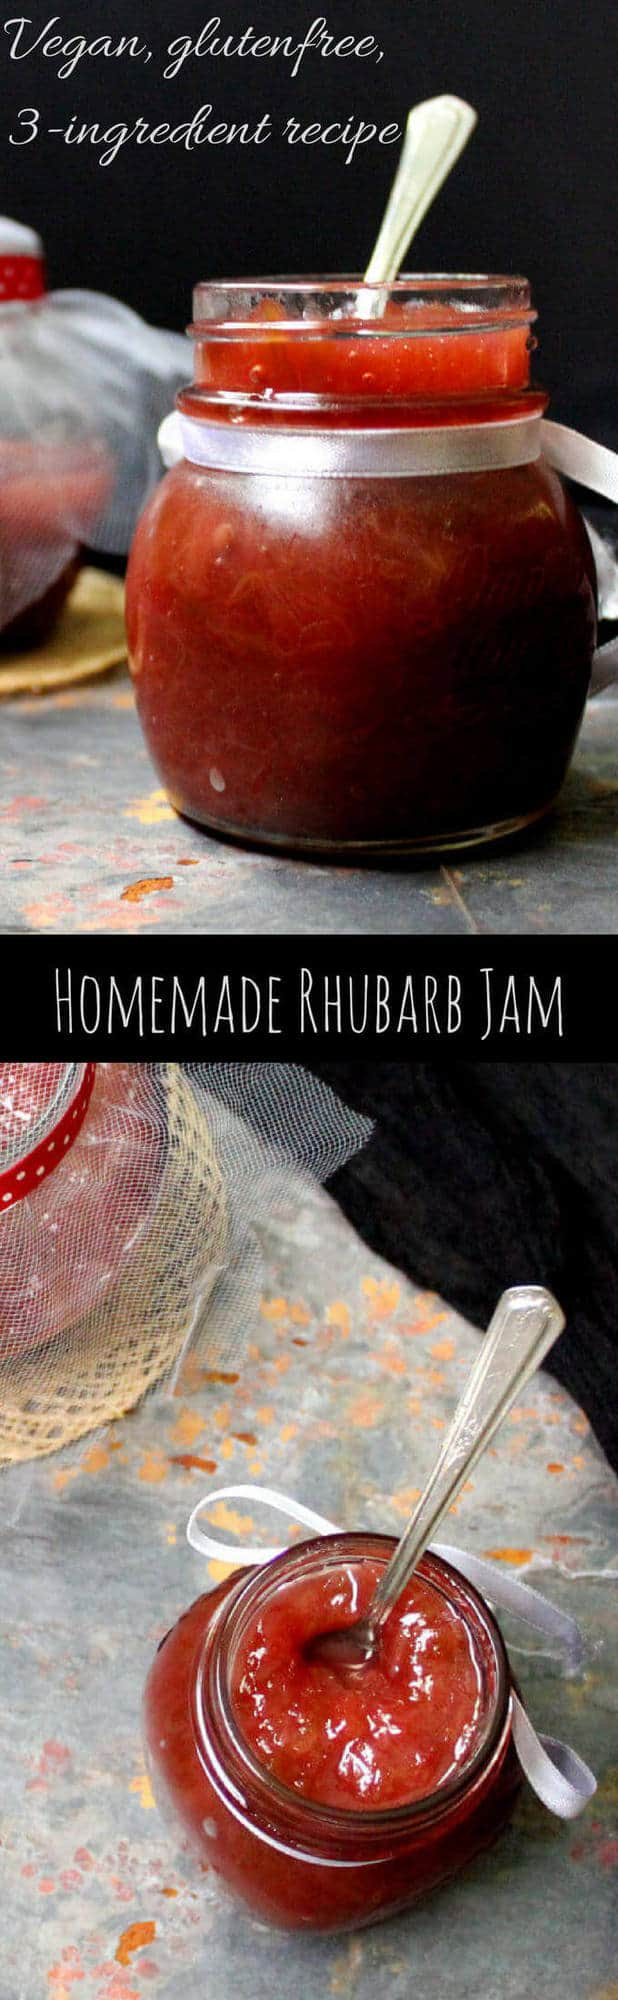 """Images of rhubarb jam in jars with inlay that reads """"homemade rhubarb jam"""""""